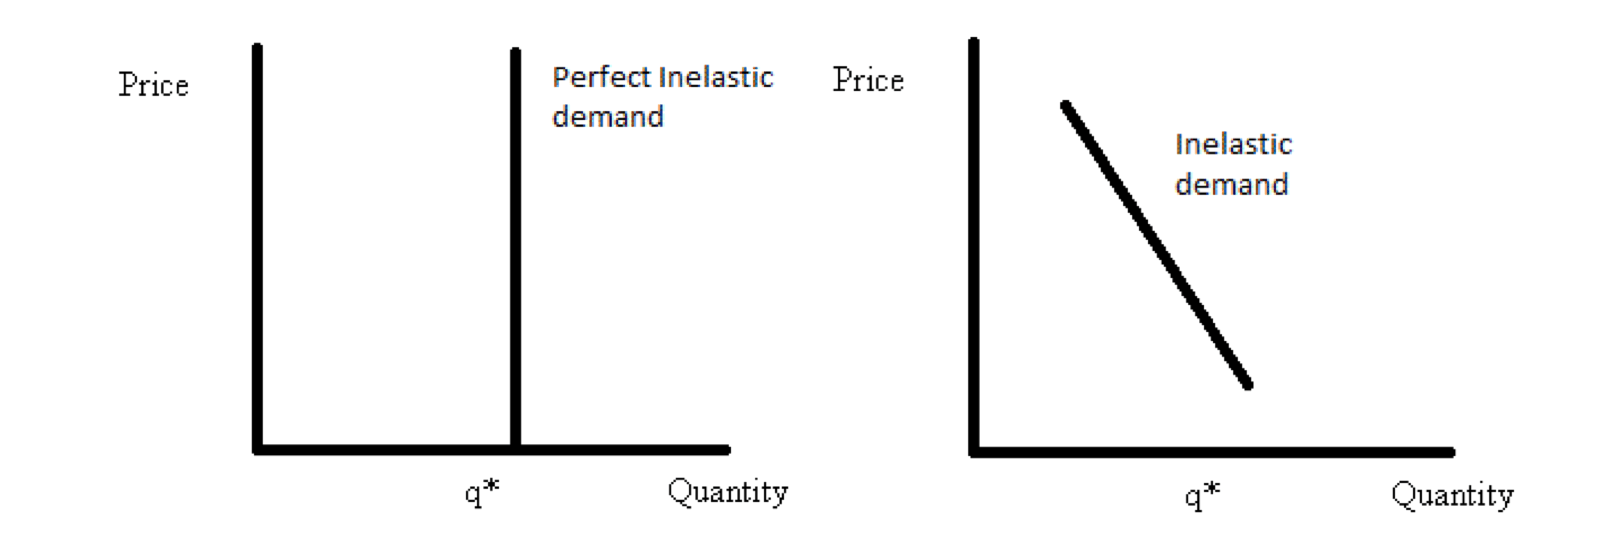 Inelastic Demand How Prices Impact Demand Definition Diagrams